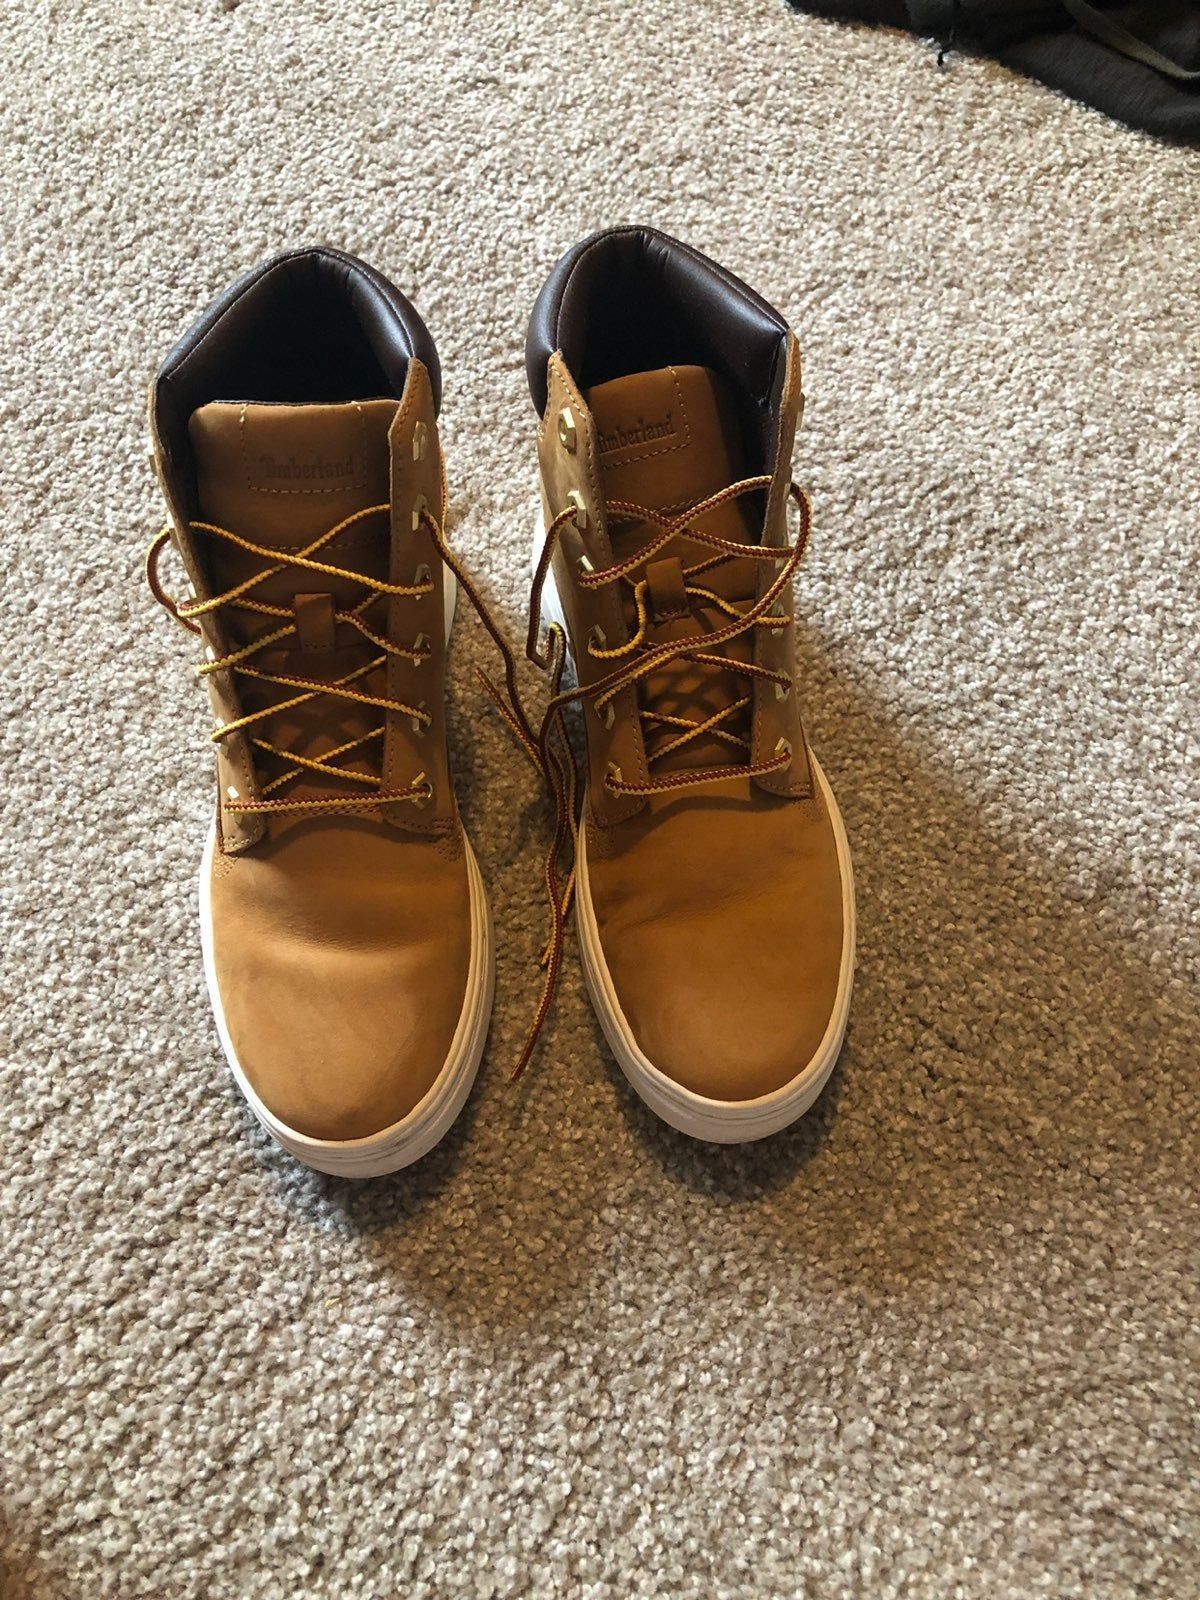 Timberland high top shoes! Worn once